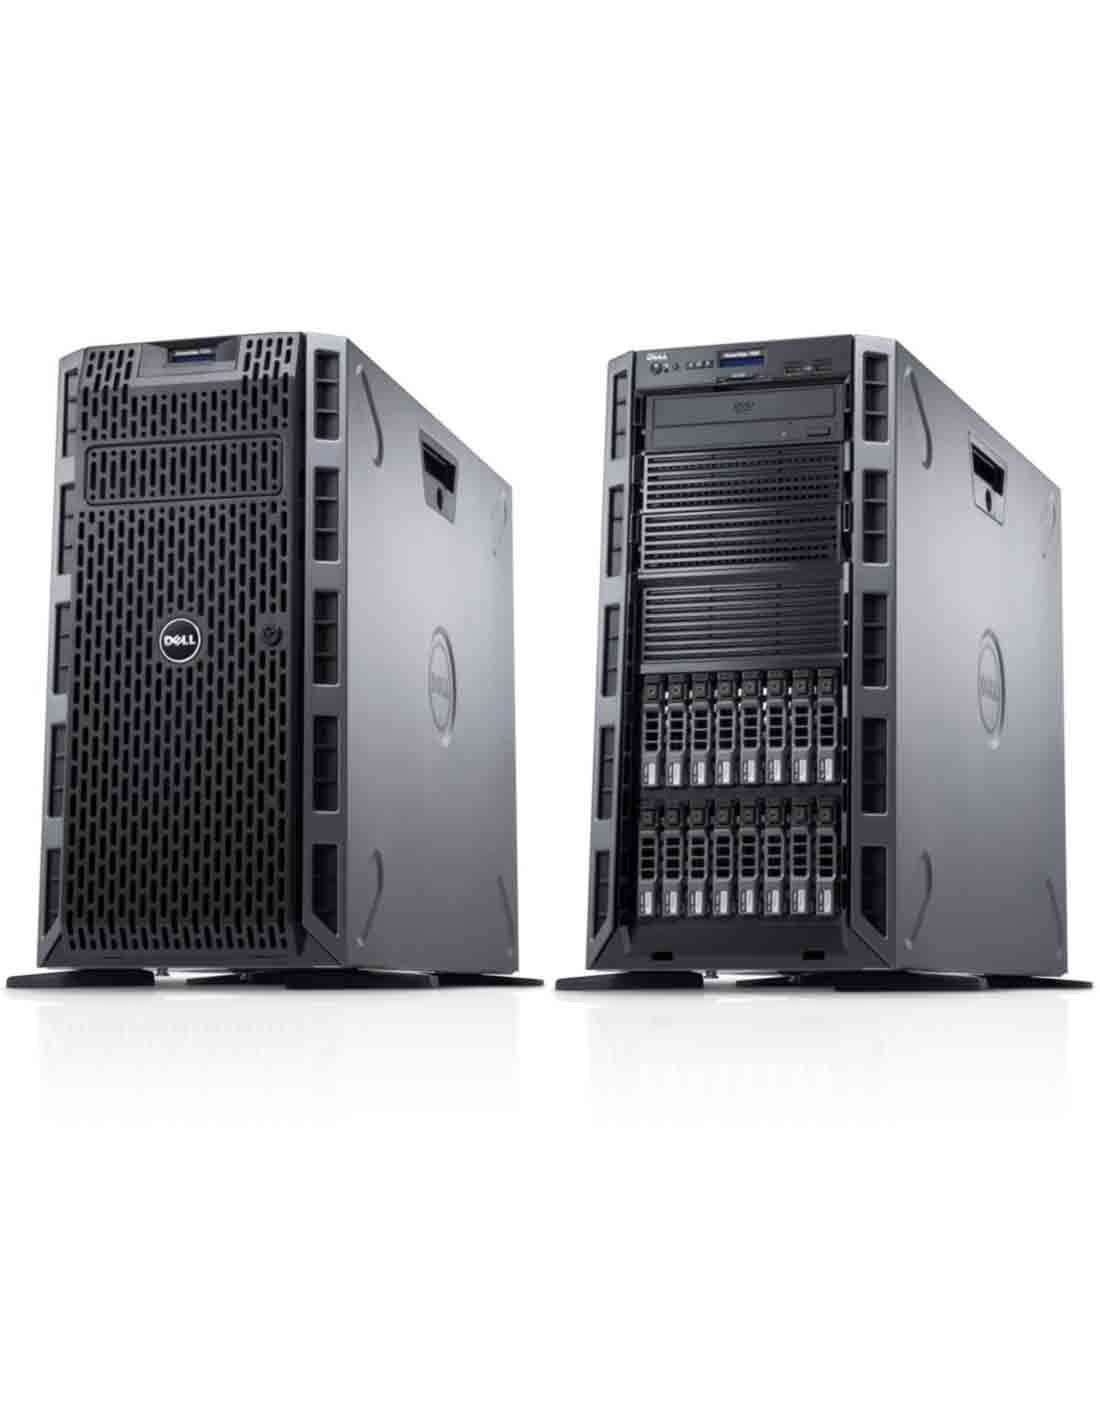 Dell PowerEdge T320 Tower Server Buy Online at a Cheap Price in Dubai UAE